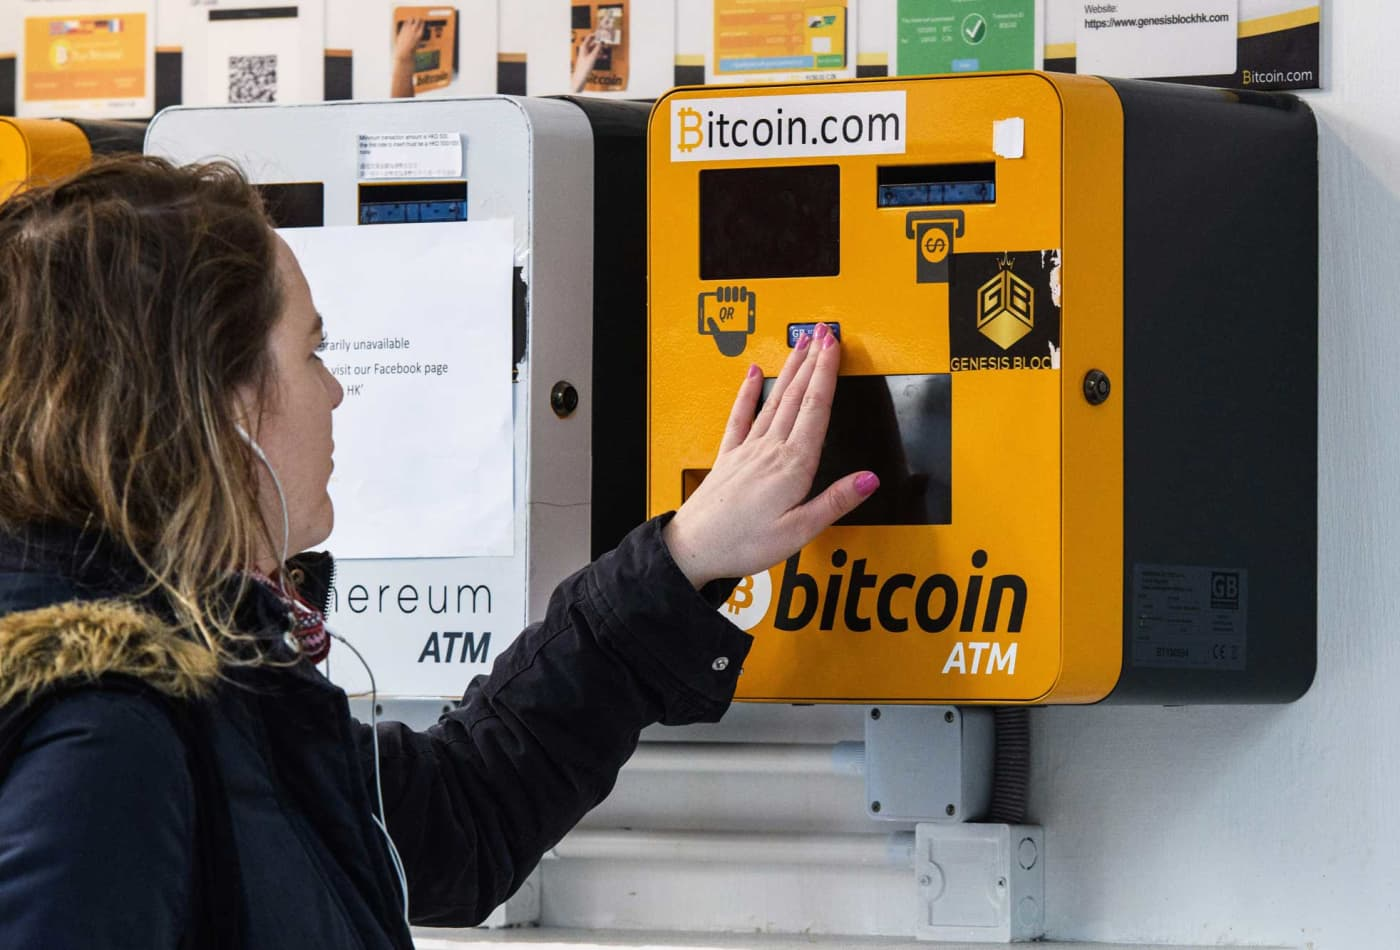 Here's how bitcoin gets to $12,000